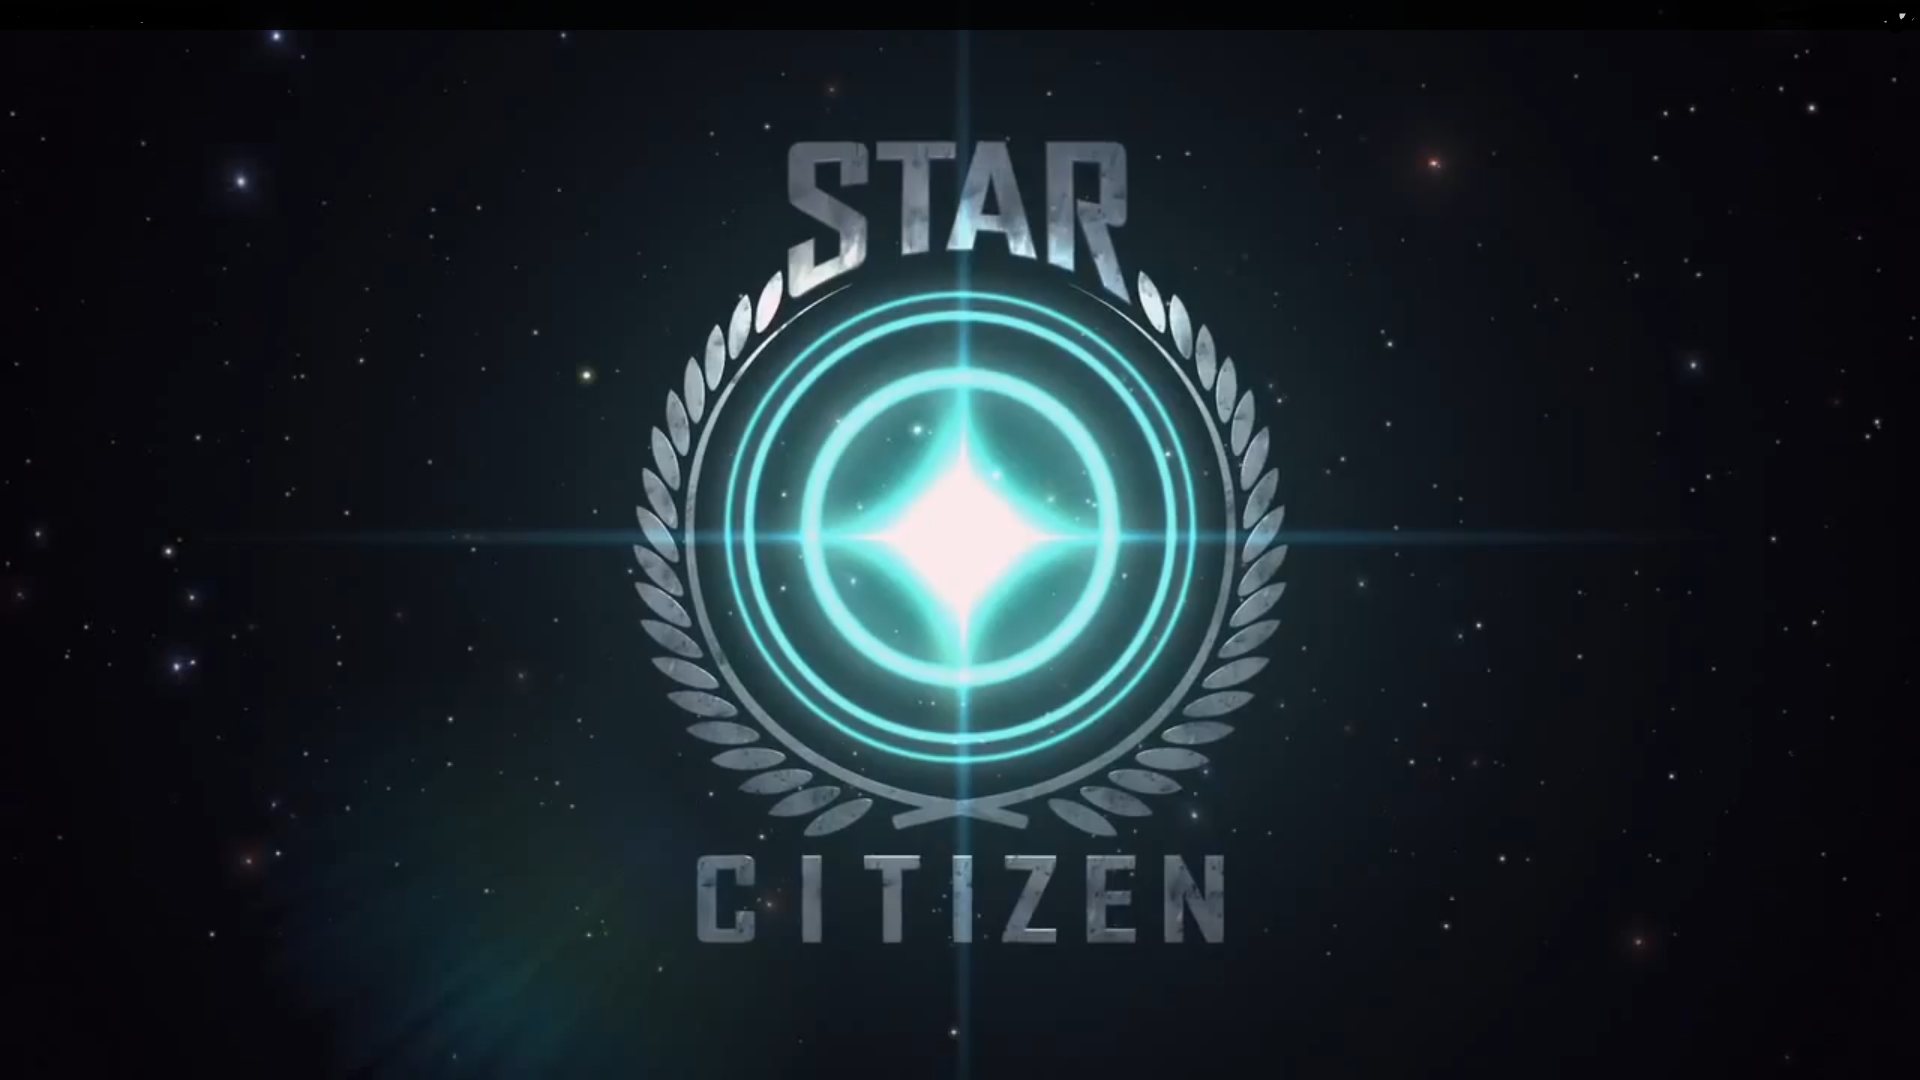 star citizen feiert citizencon 2014 zeigt landungssequenz und neue schiffe game2gether. Black Bedroom Furniture Sets. Home Design Ideas